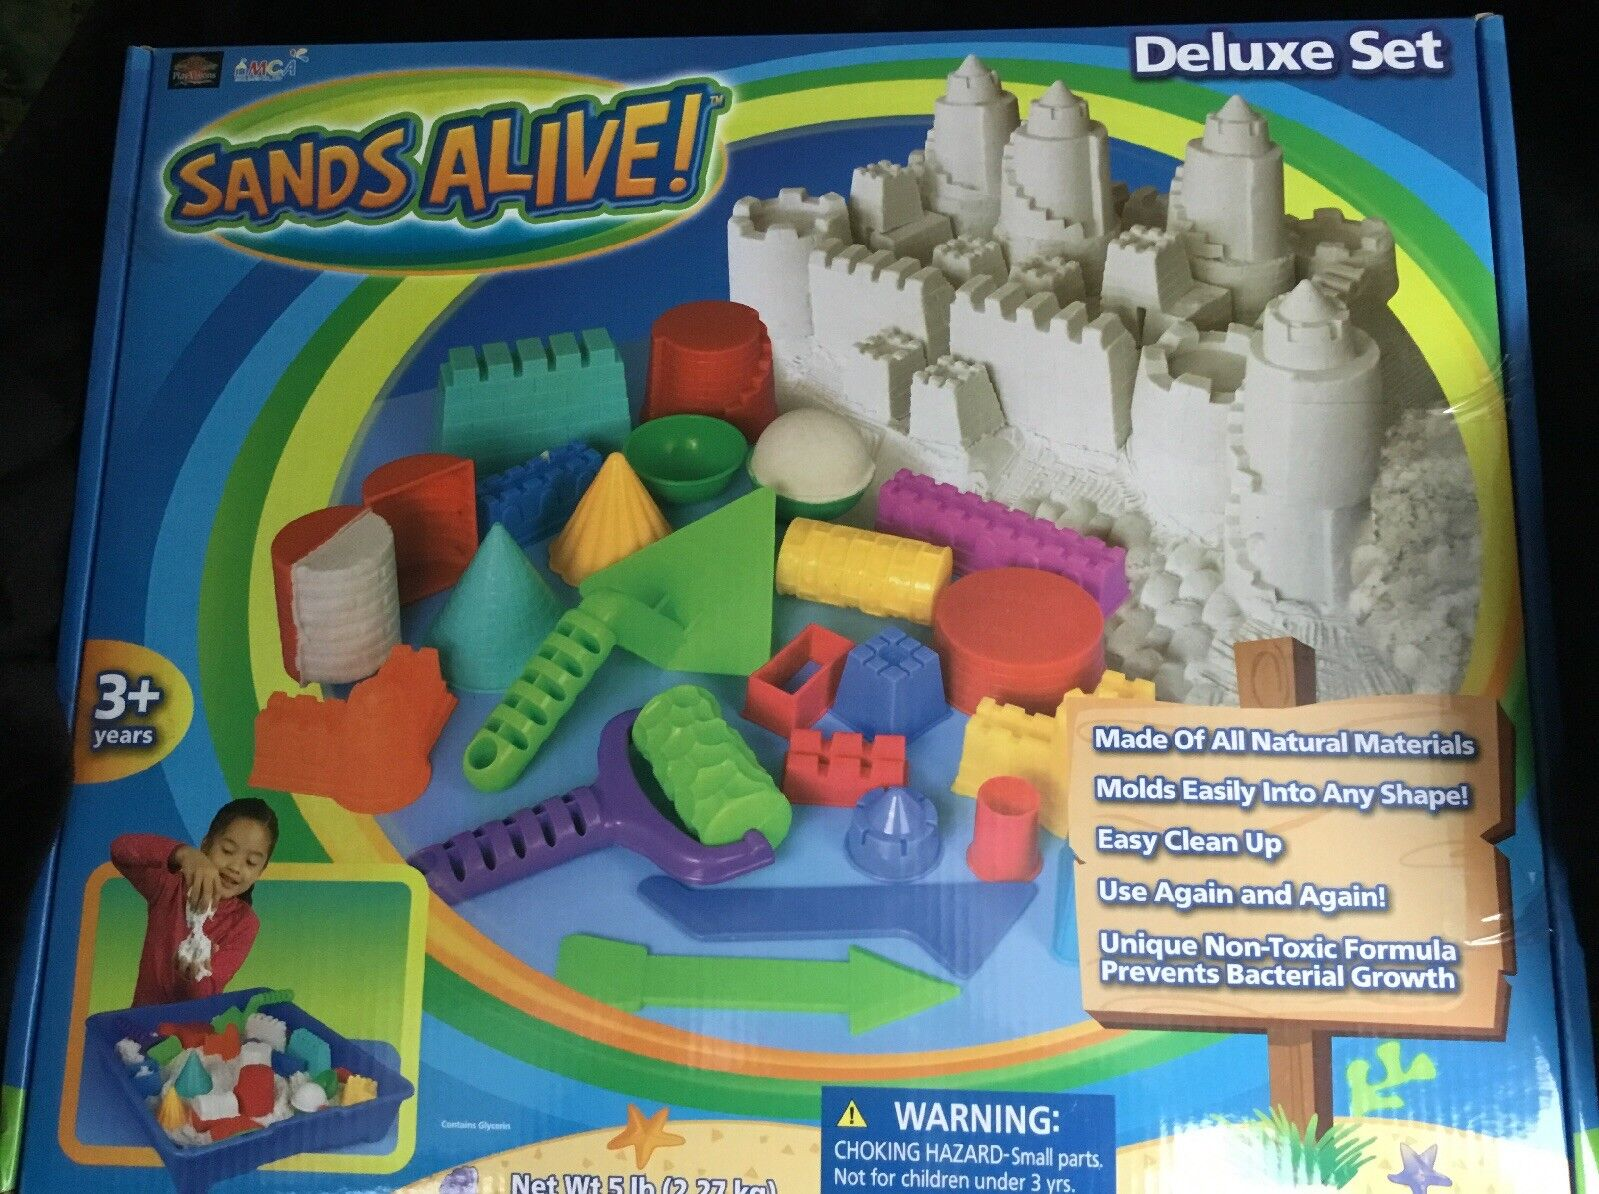 Kinetic Sands Alive-Deluxe Set (5lbs of Sands Alive) HTF- Enorm Fantastisk Set-New